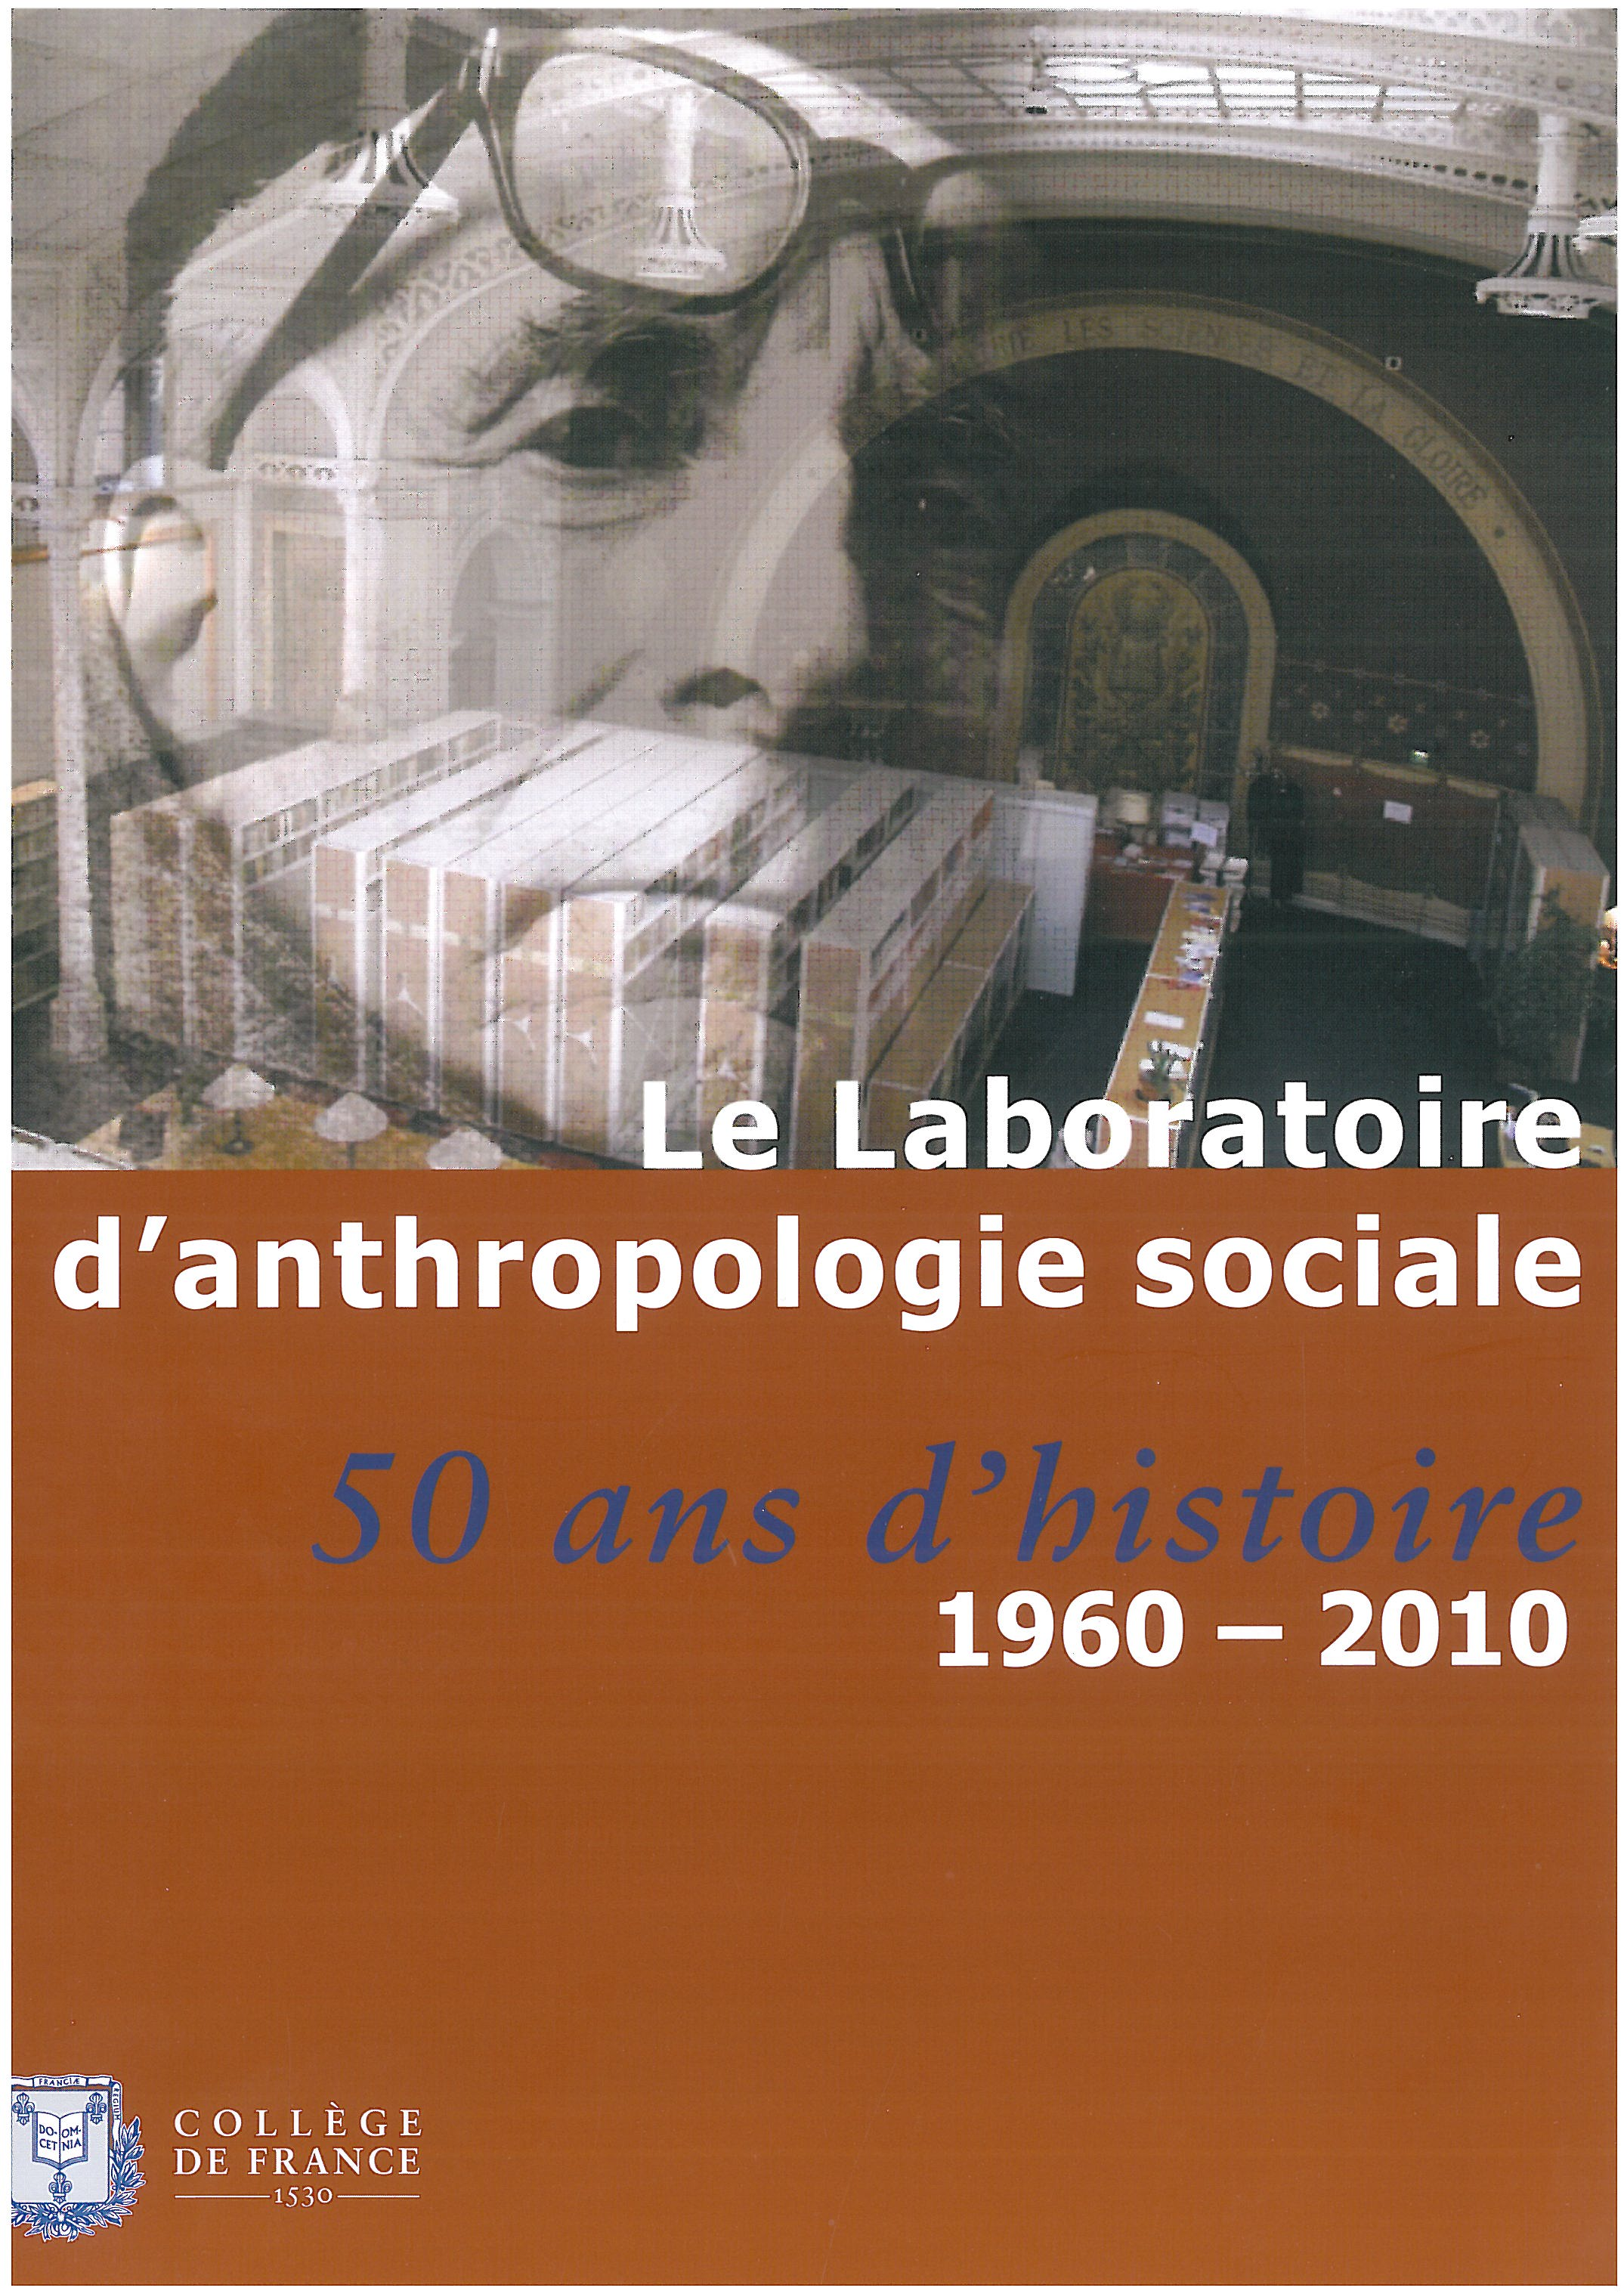 Le Laboratoire d'anthropologie sociale